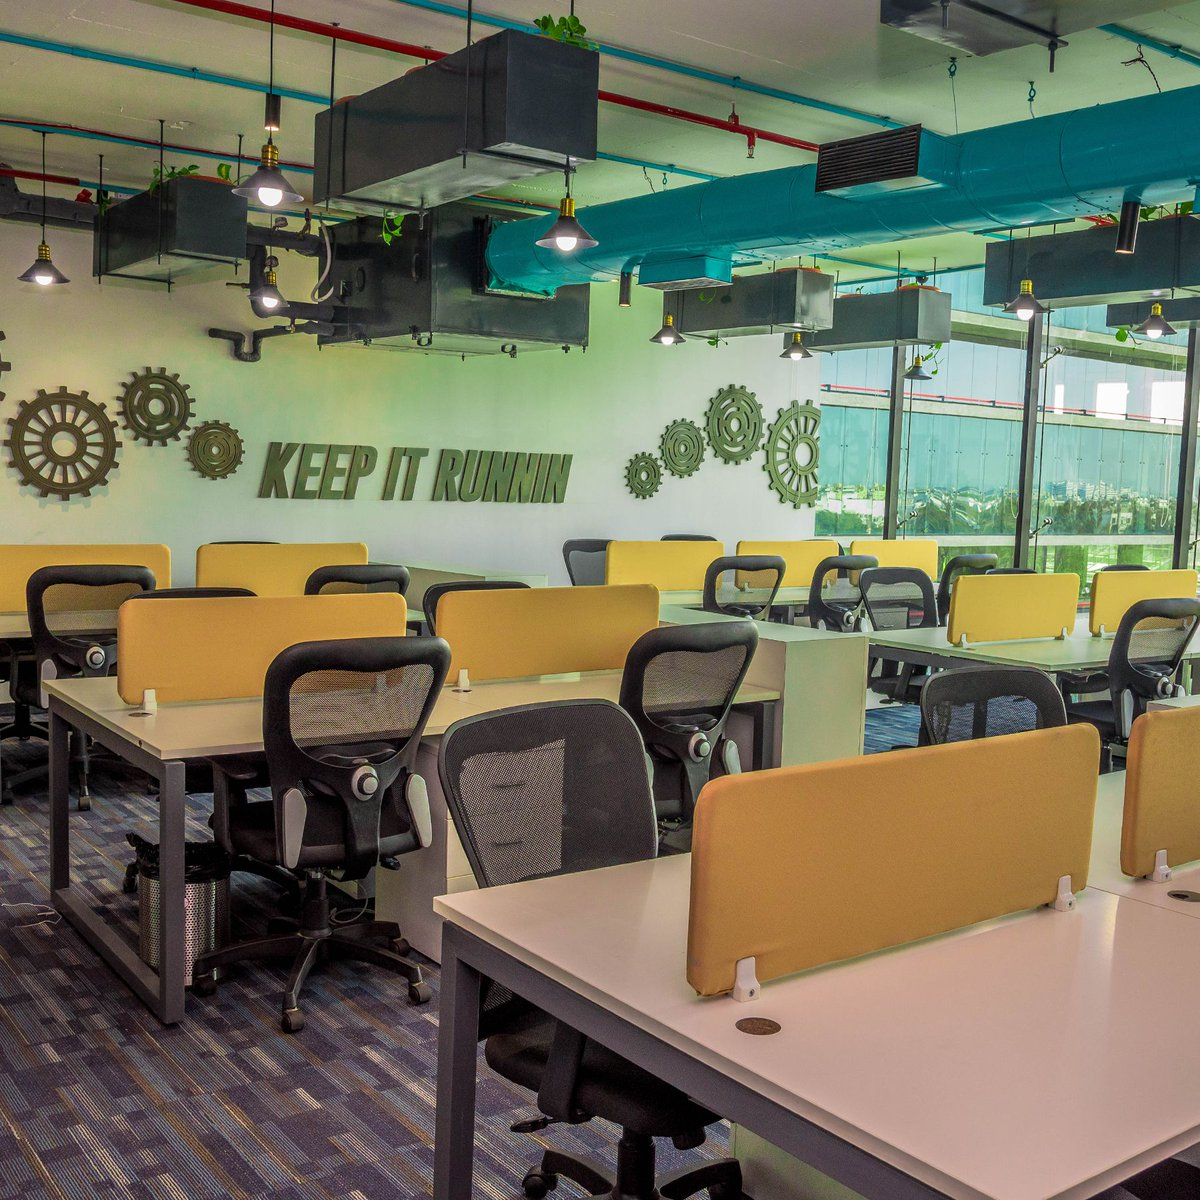 When workspace so cool, who would want to leave 💯   #Incuspaze #officespace #office #workspace #coworking  #business #coworkingspace #work #entrepreneur #smartoffice